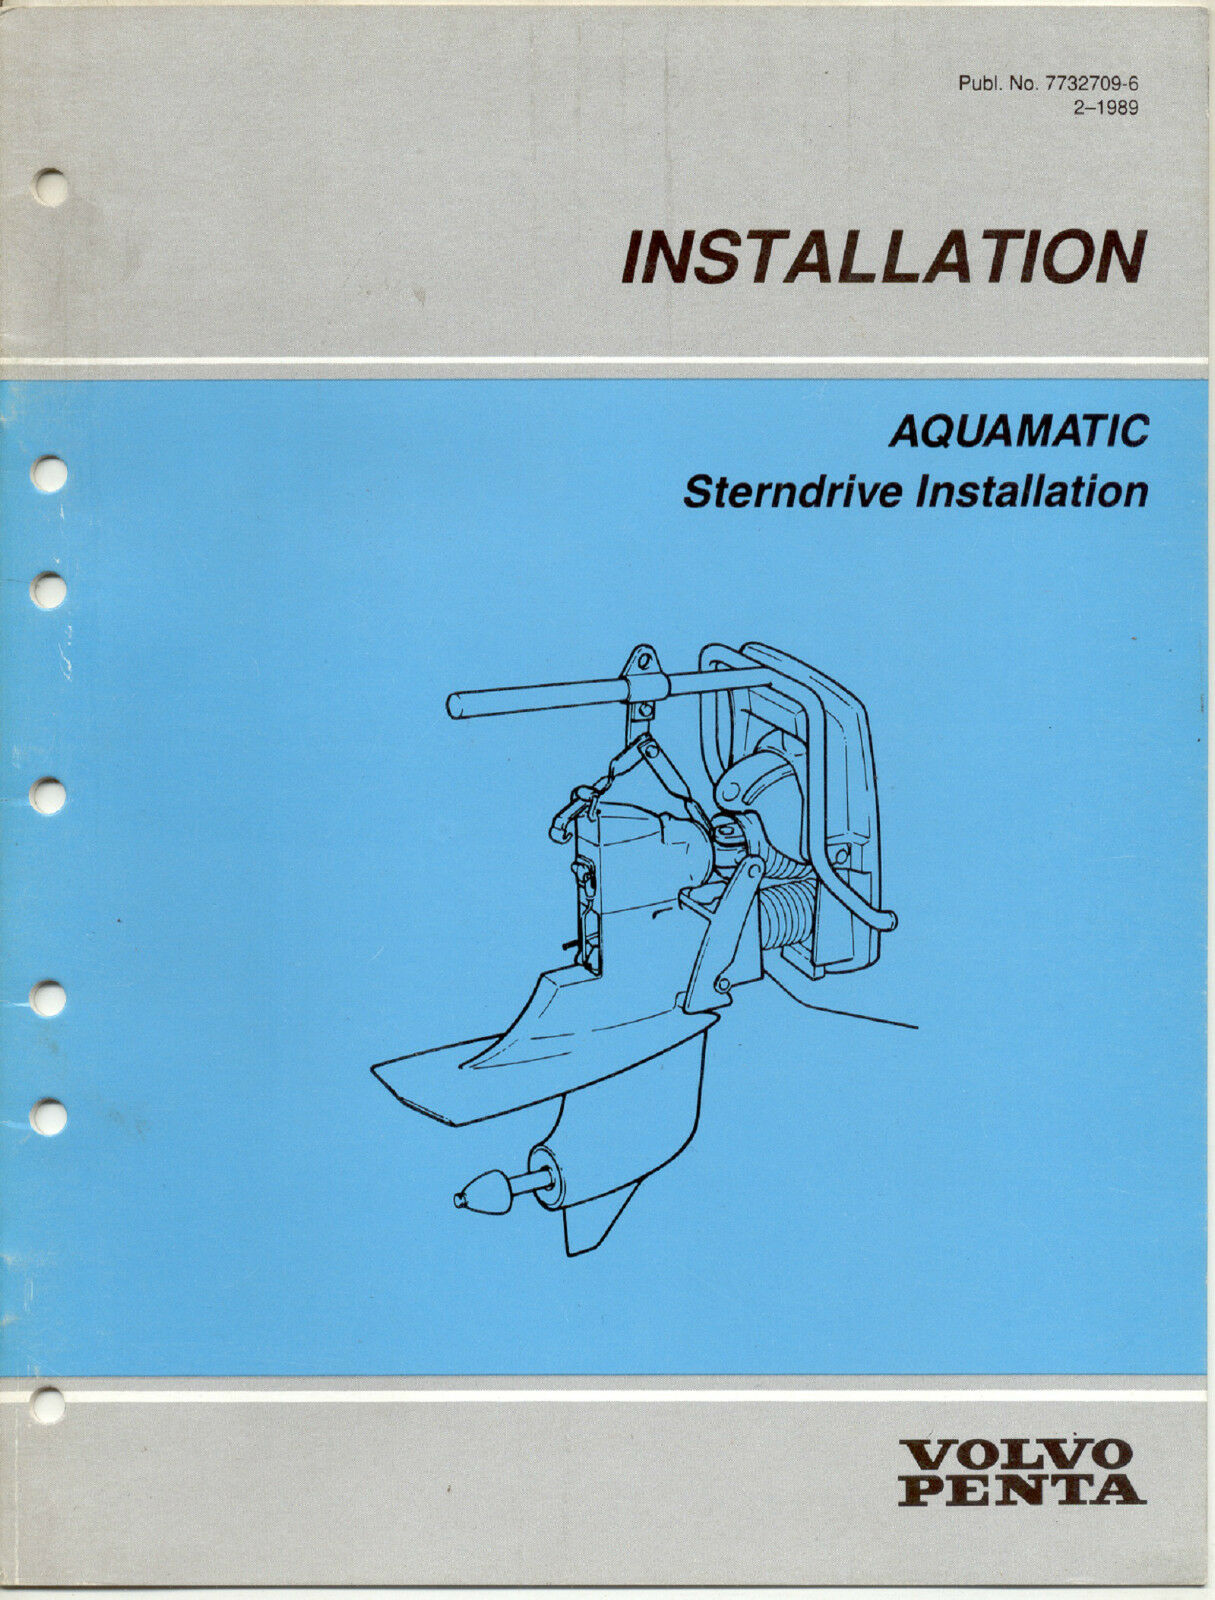 Volvo Penta Aquamatic Sterndrive Installation Manual 3999 Picclick 270 Trim Wiring Diagram 1 Of 1only Available